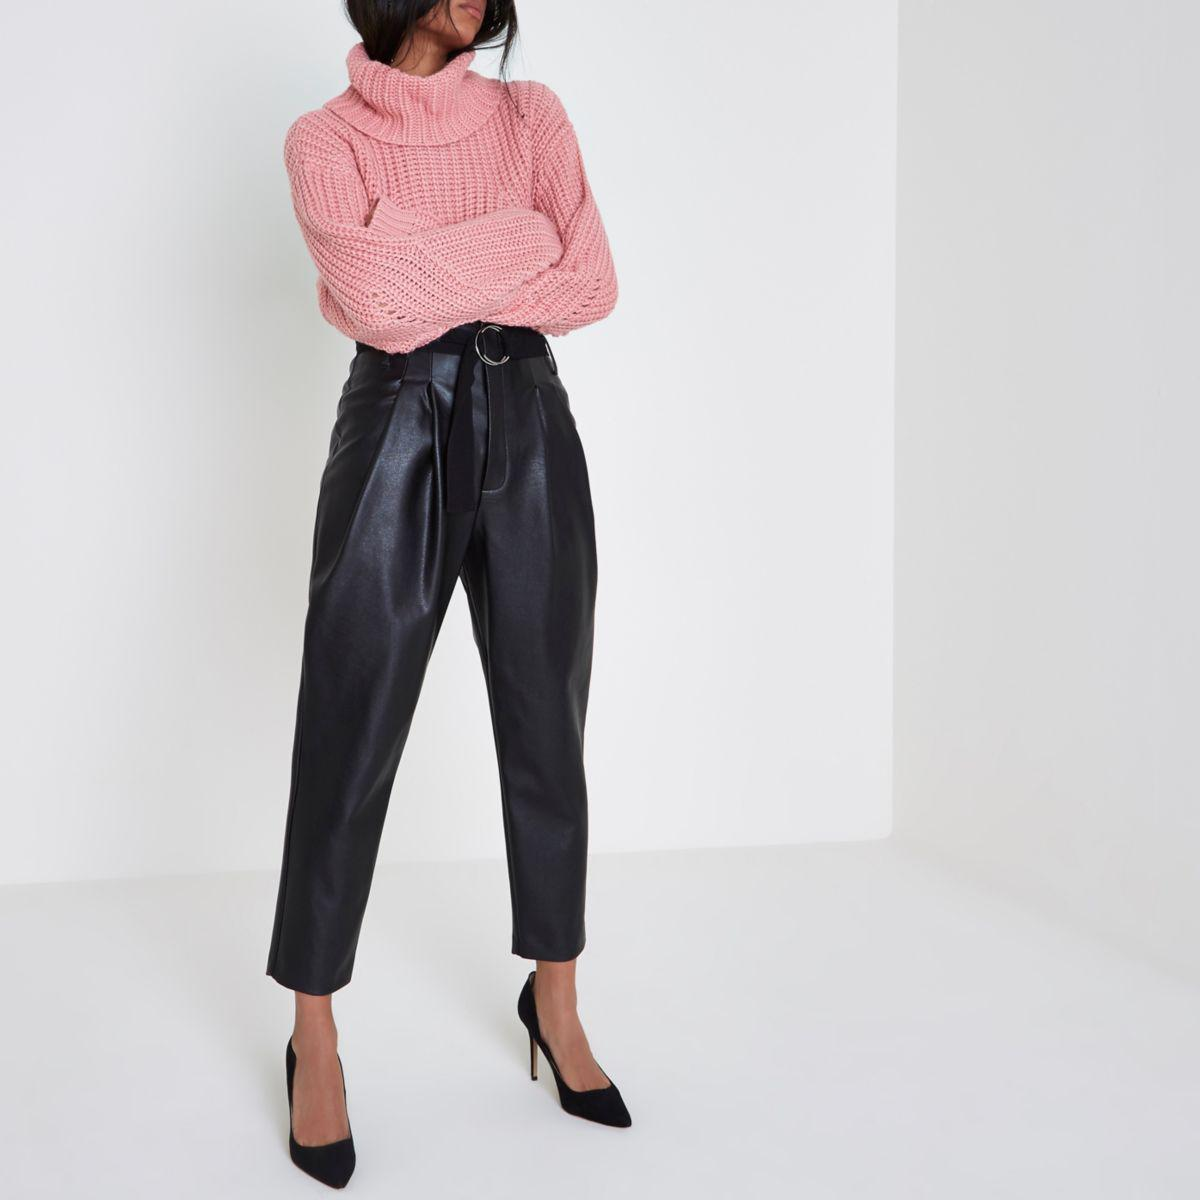 ca7d55dfcf198 River Island Black Faux Leather Tapered Trousers Black Faux Leather ...